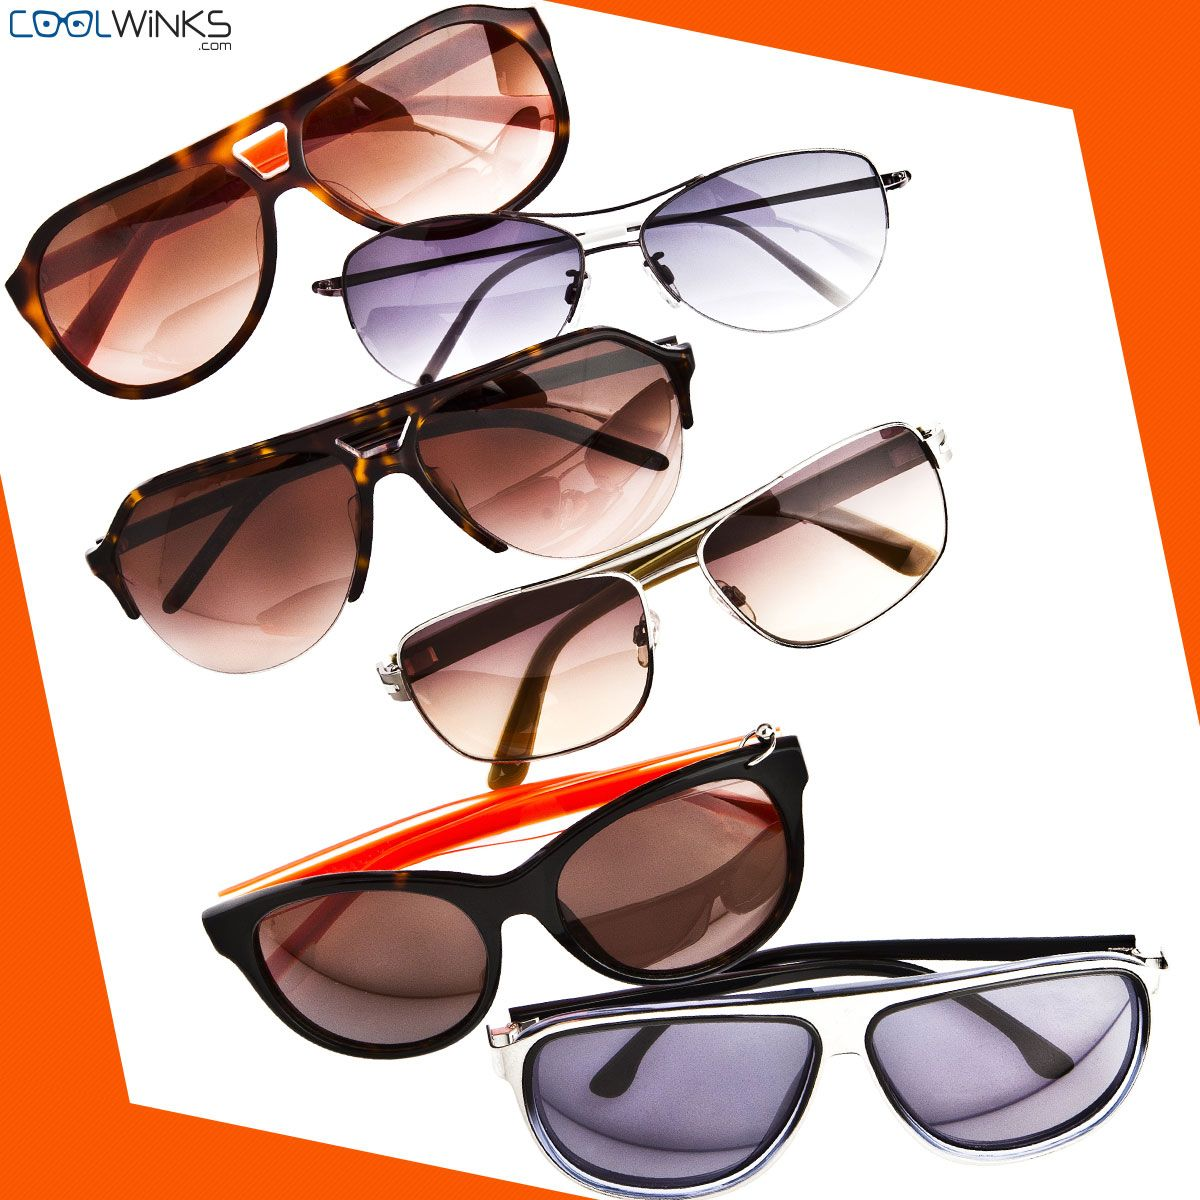 7c64eba5de32 Grab some Stylish Sunglasses  Coolwinks   FLAT 60% OFF ! Shop the PREMIUM  COLLECTION starting   Rs. 169. Buy Now.